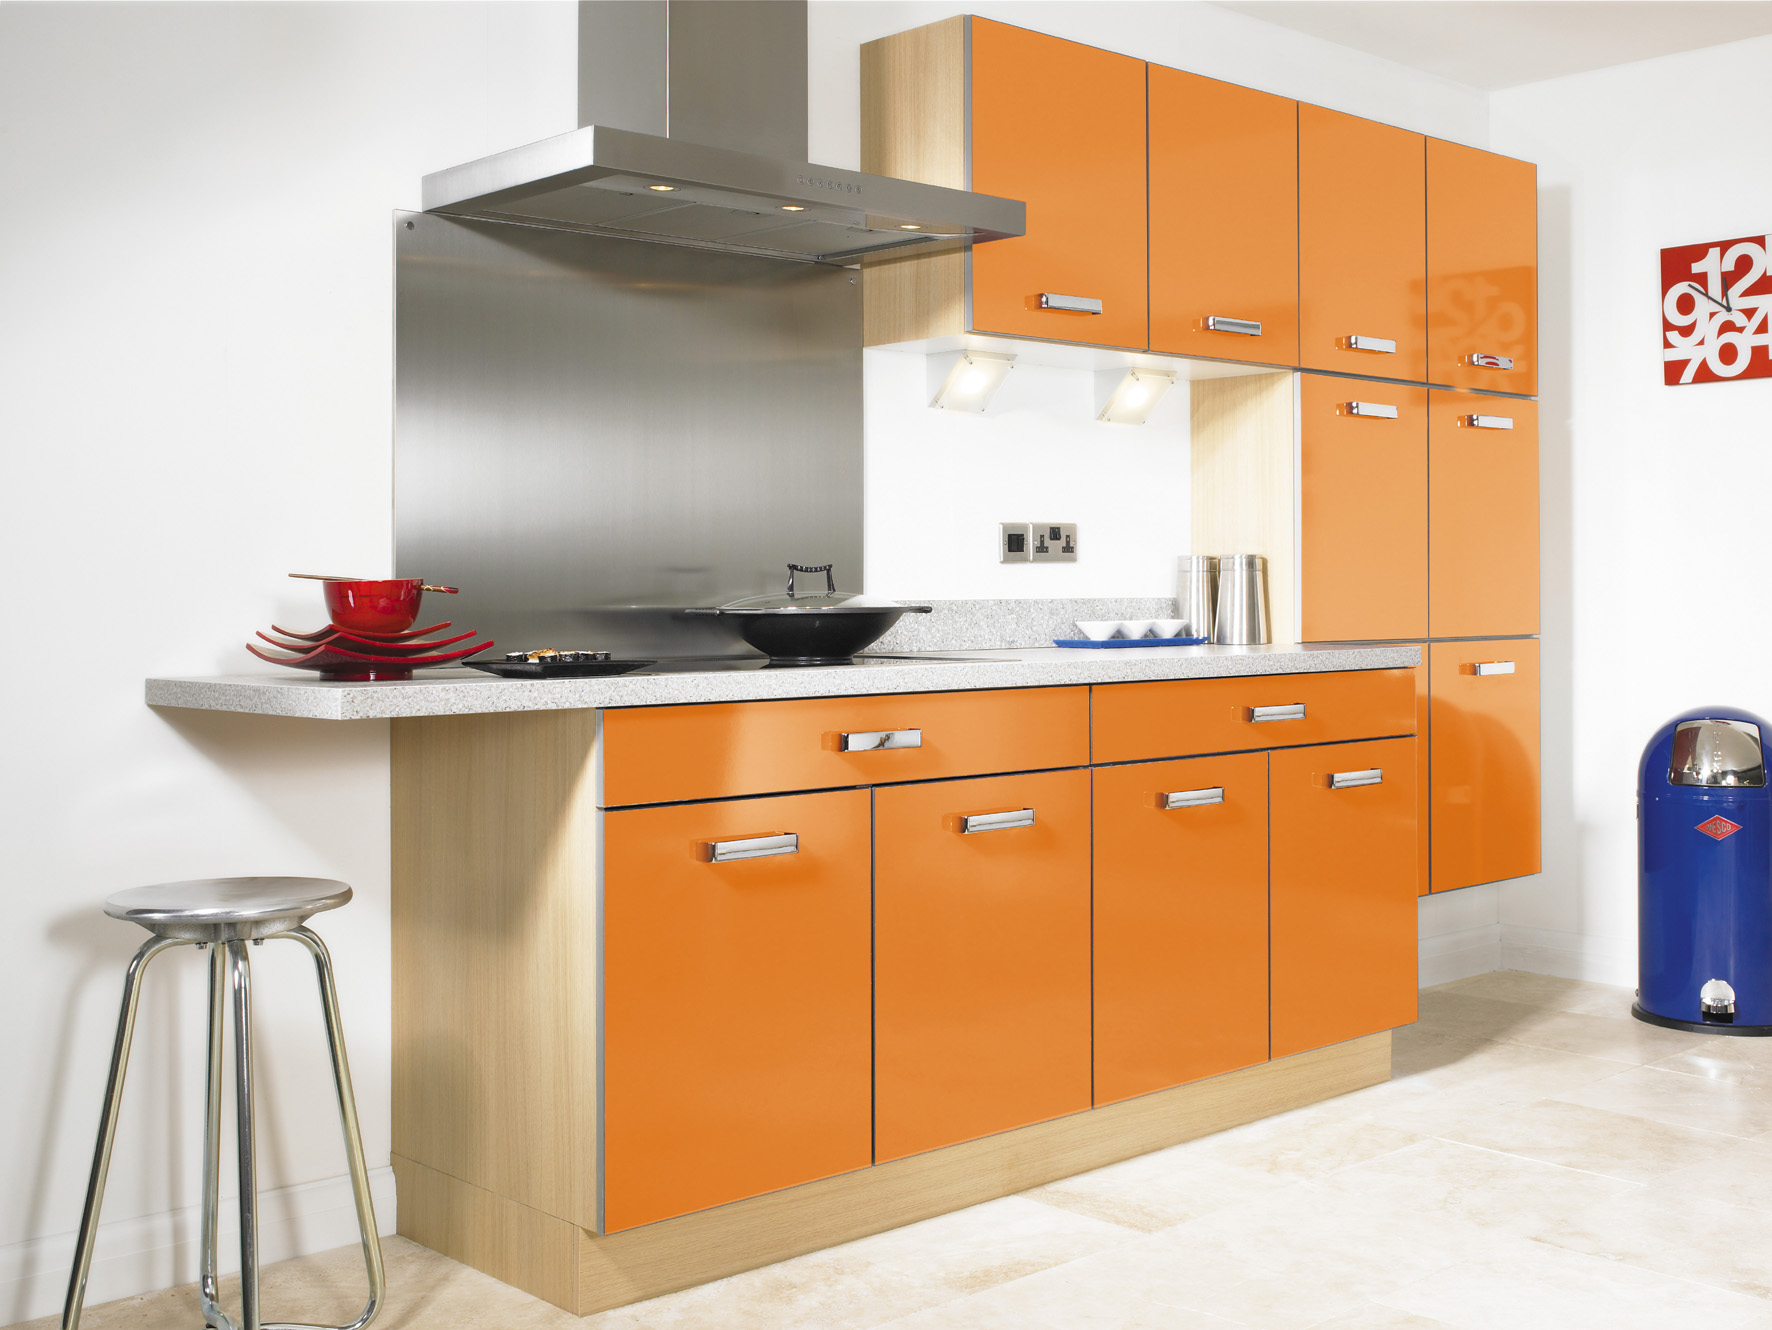 Orange kitchens - Interior design kitchen ...